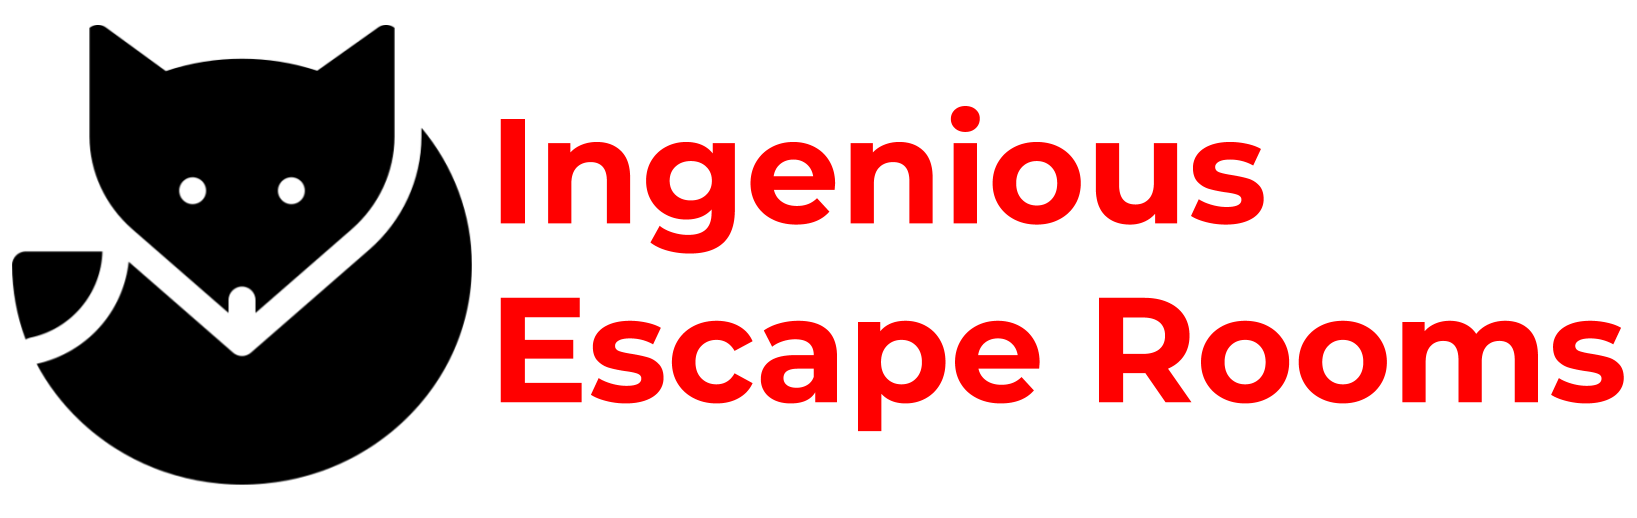 Ingenious Escape Rooms |   logo